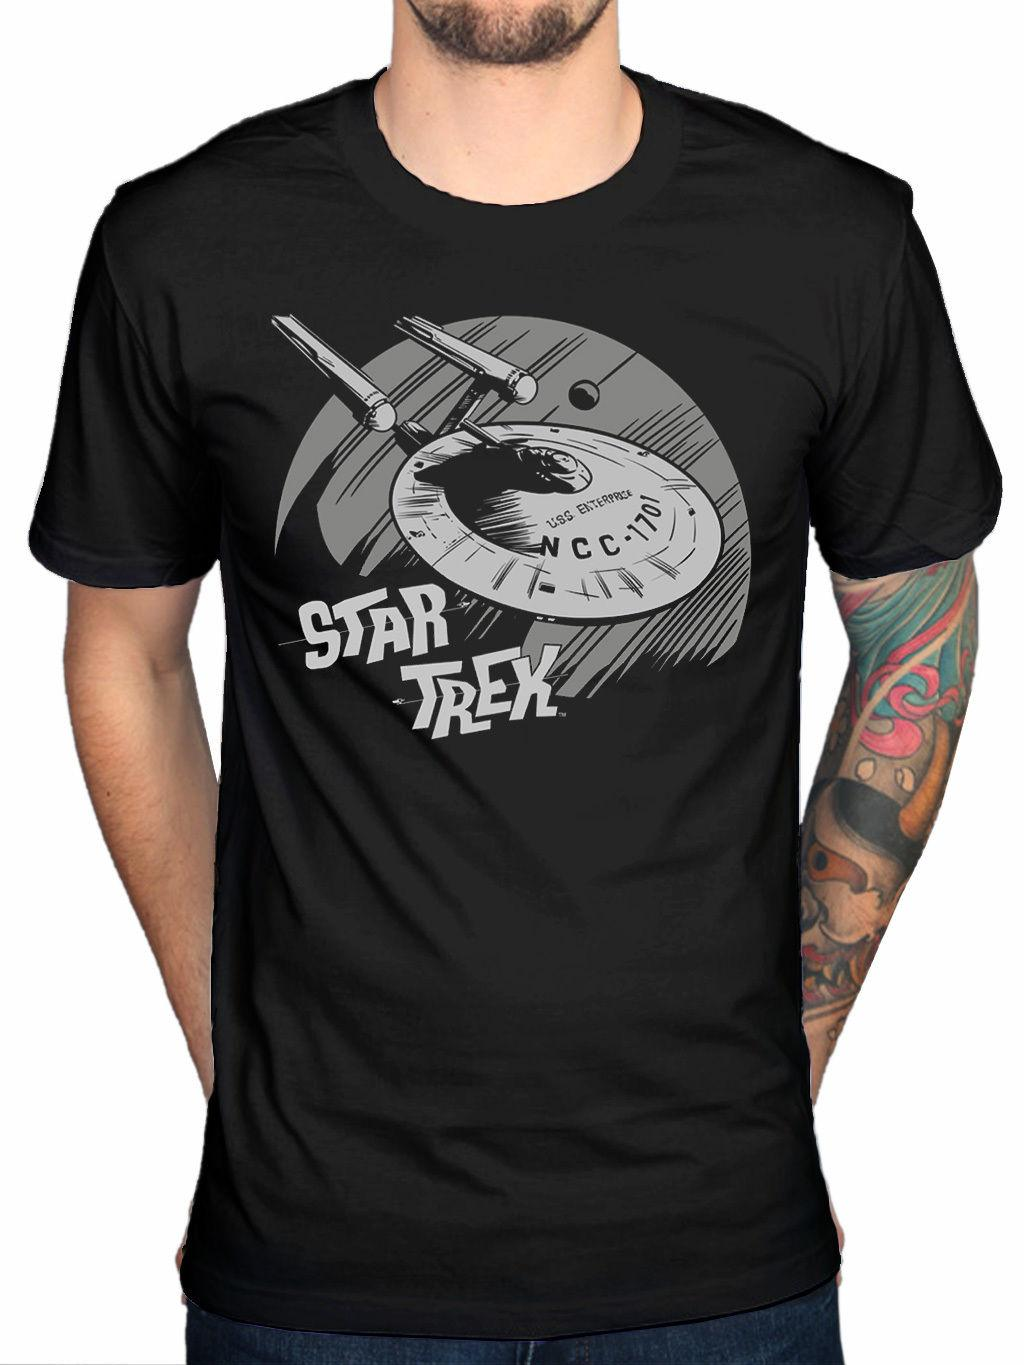 Official Star Trek Enterprise T-Shirt Movie Merchandise Kirk Spock New Brand-Clothing Tee 2018 Summer 100% Cotton Top Tee Men